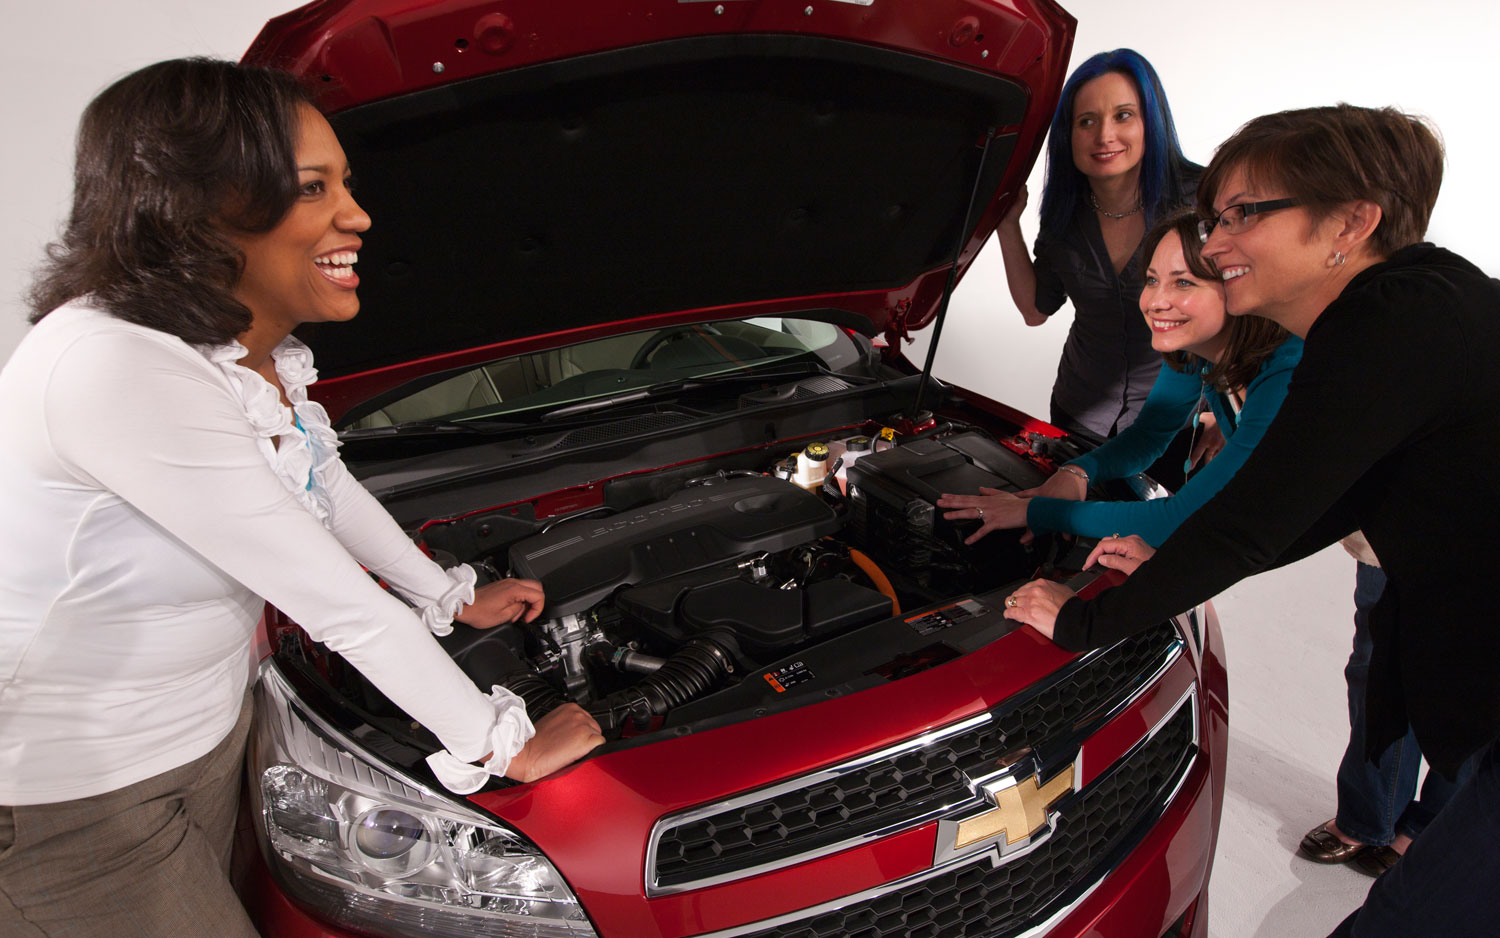 2013 Chevrolet Malibu With Female Engineers 21